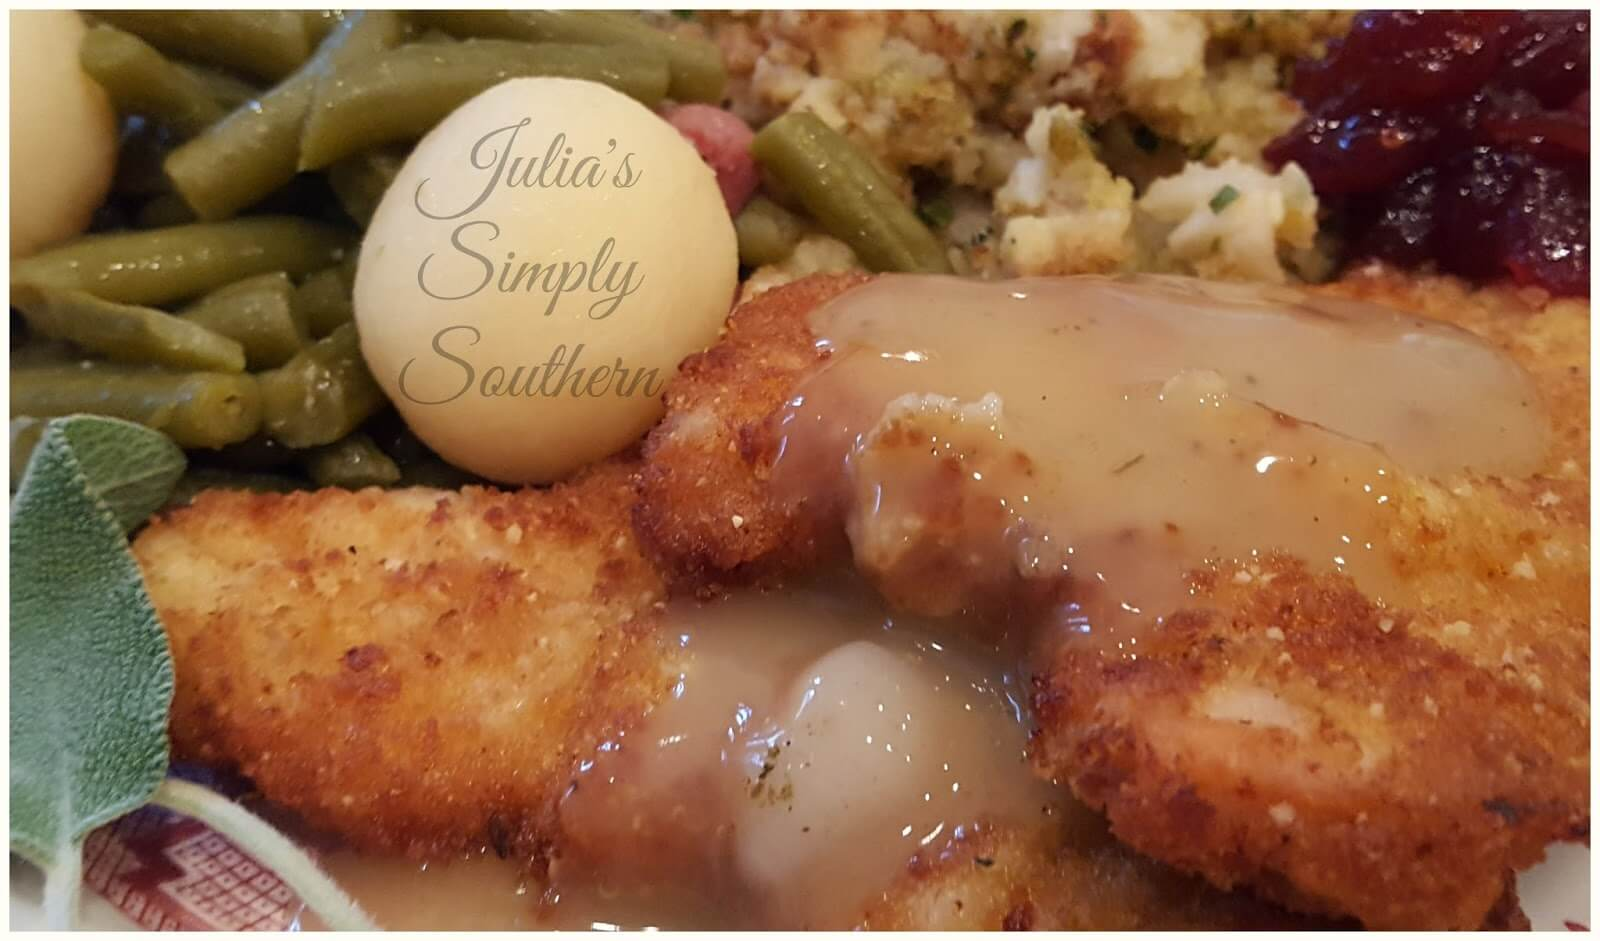 Breaded Turkey Breast Cutlets with gravy on a plate with green beans, stuffing and cranberry sauce